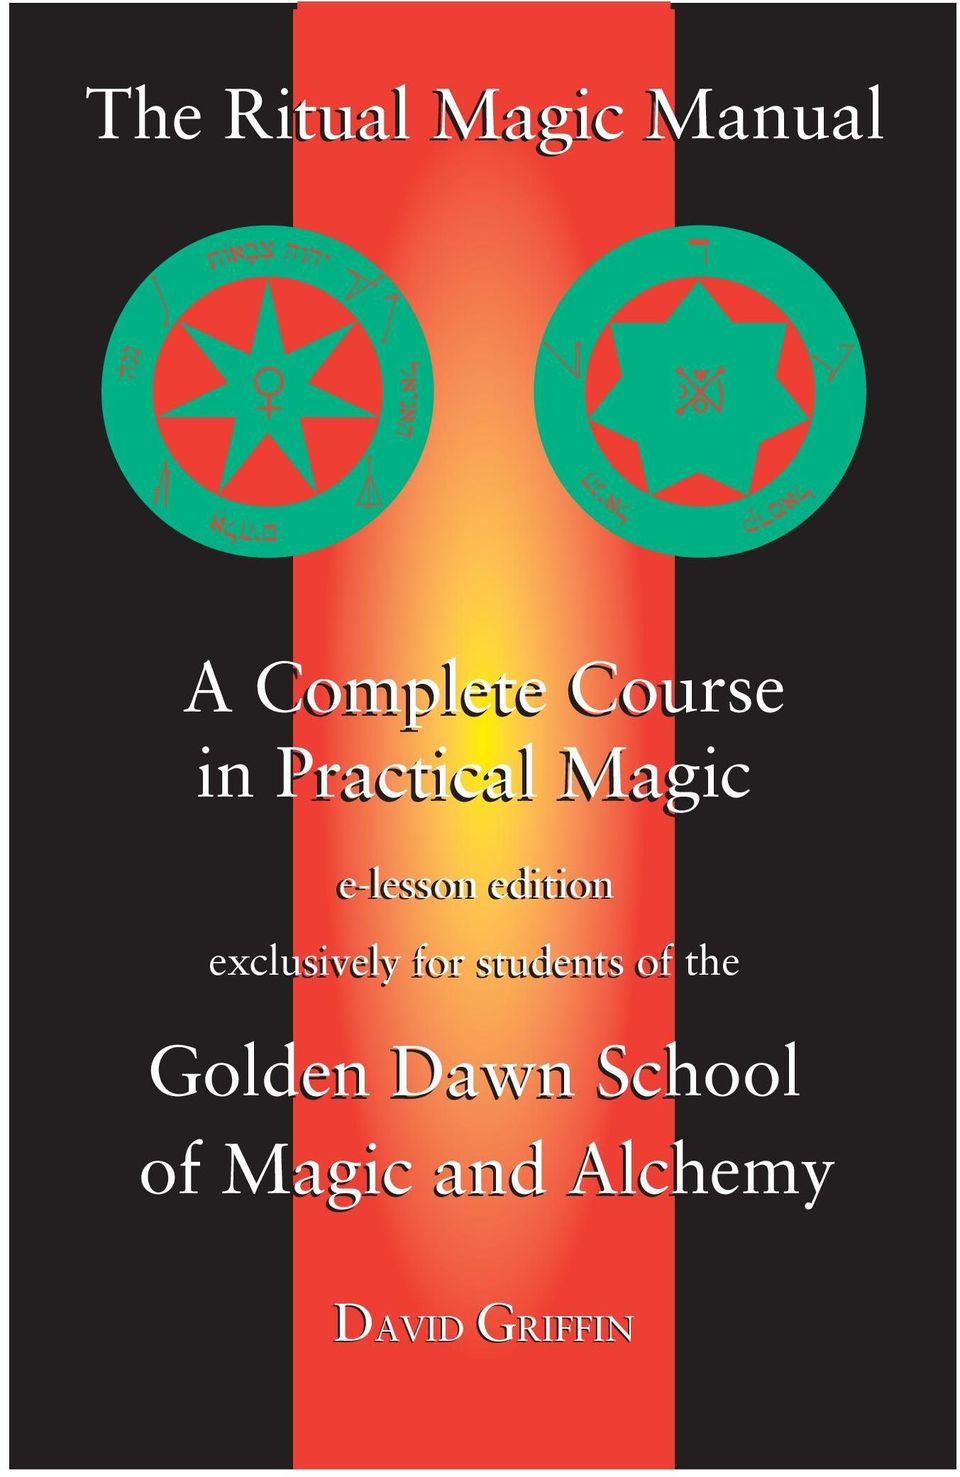 Magic e-lesson edition exclusively for students of